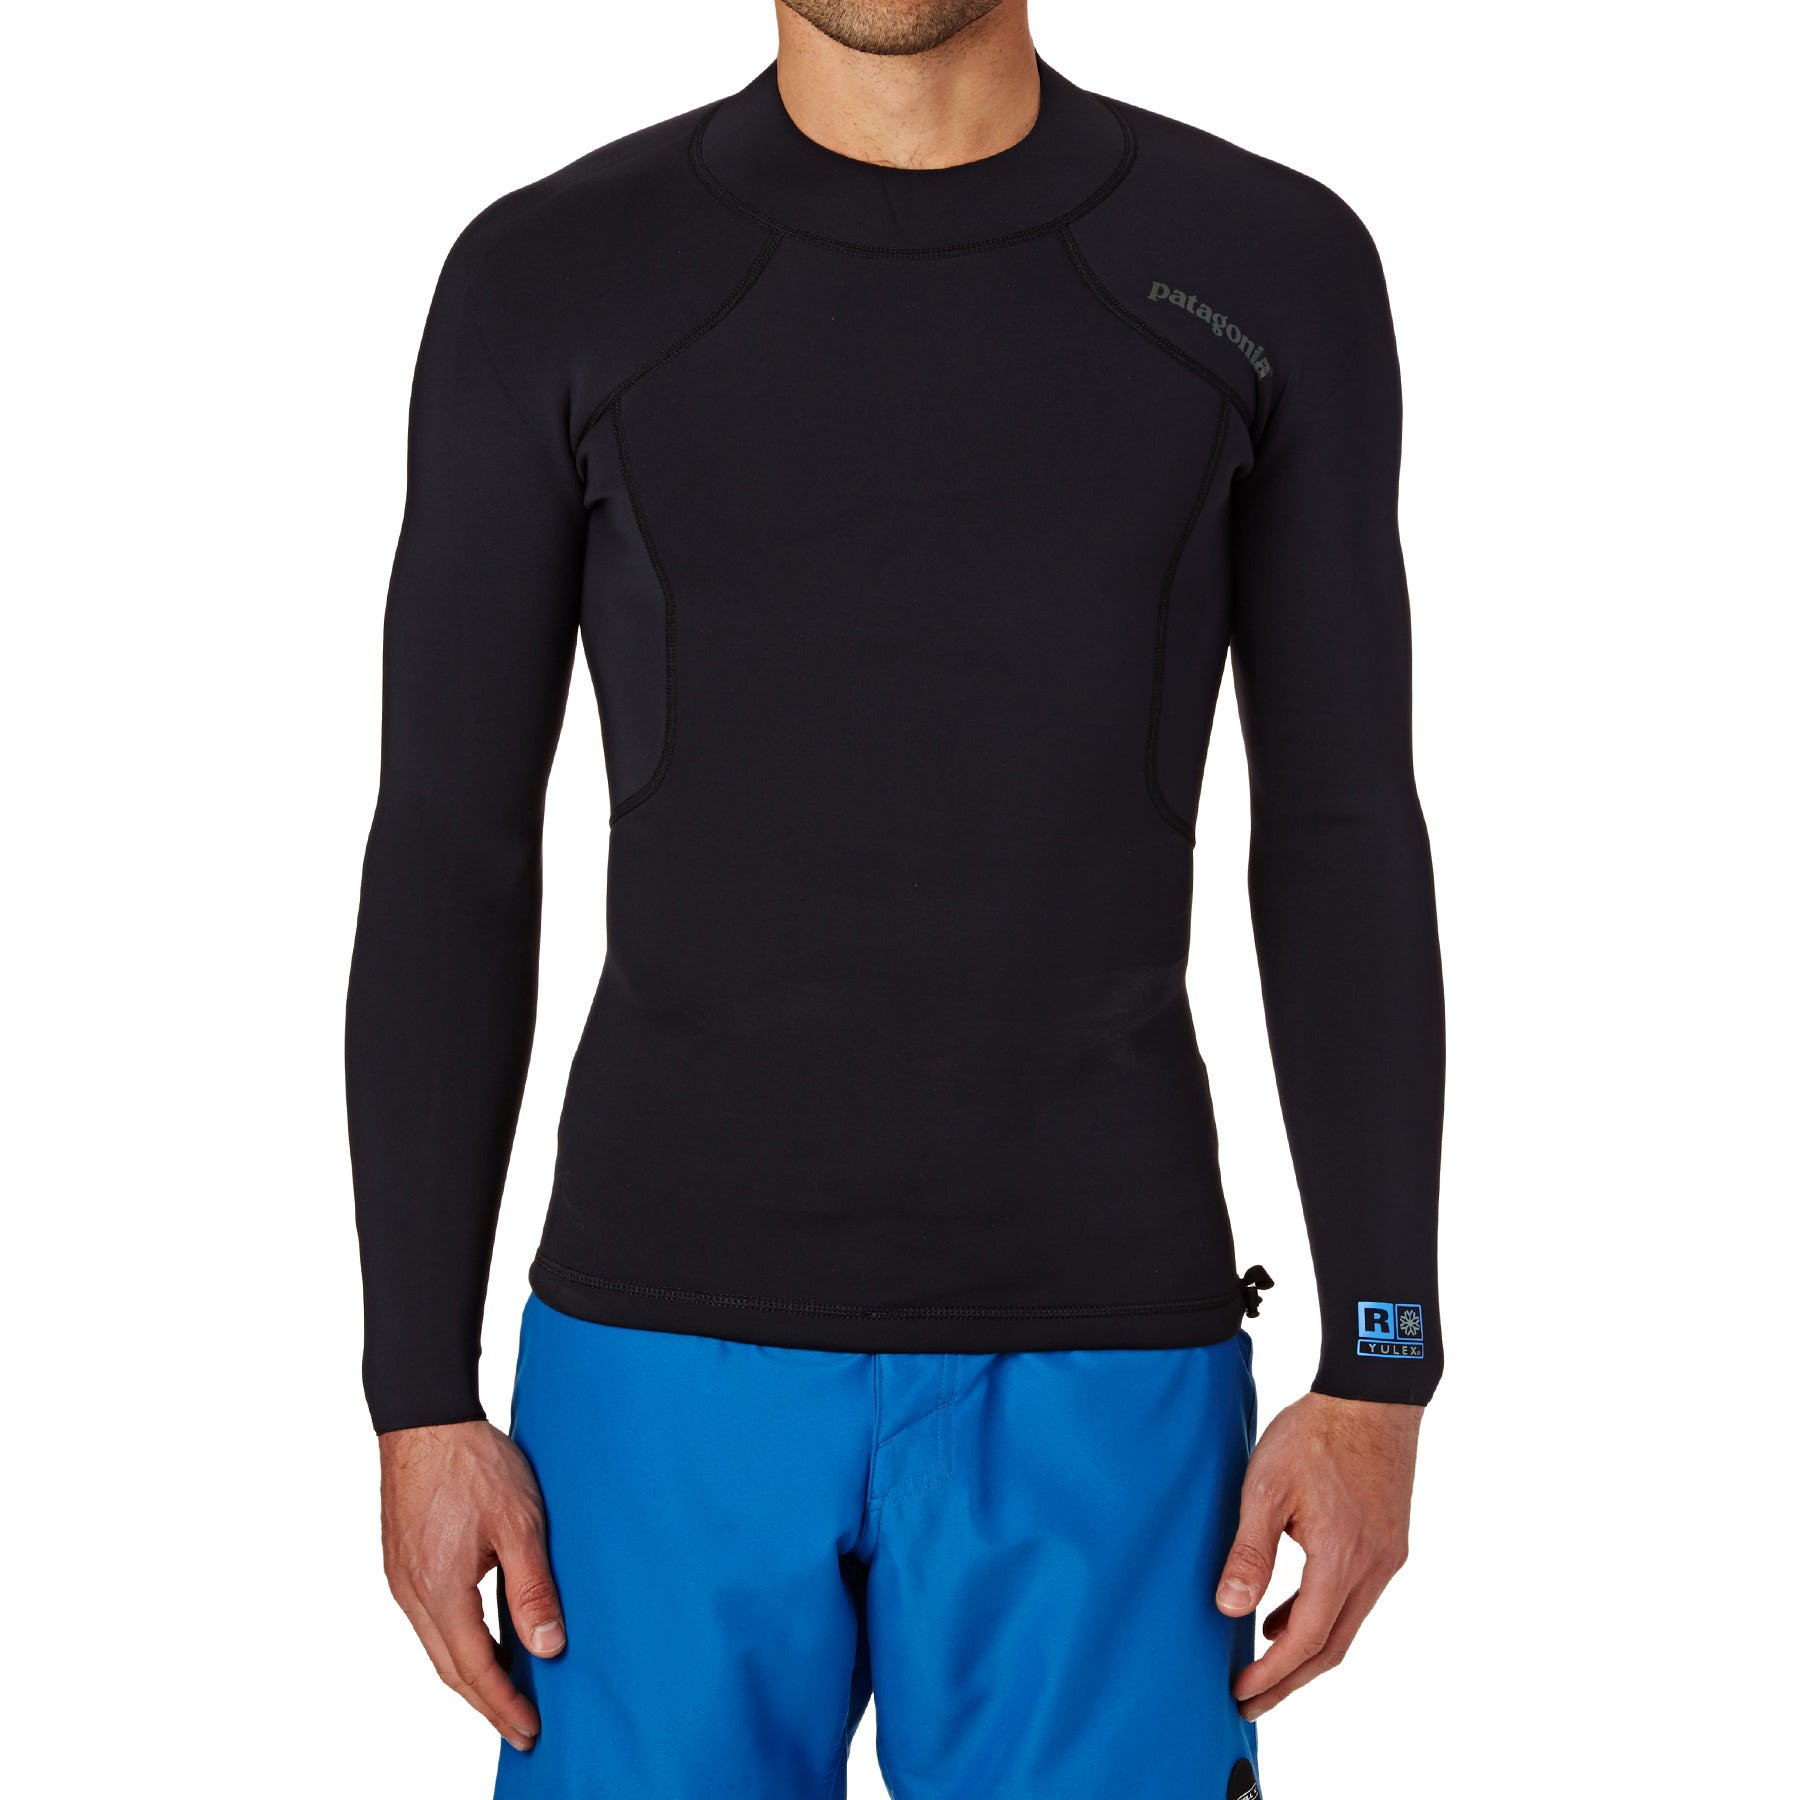 Combinaison de Plongée Patagonia 1.5mm Mens R1 Lite Yulex Long Sleeve Top - Black